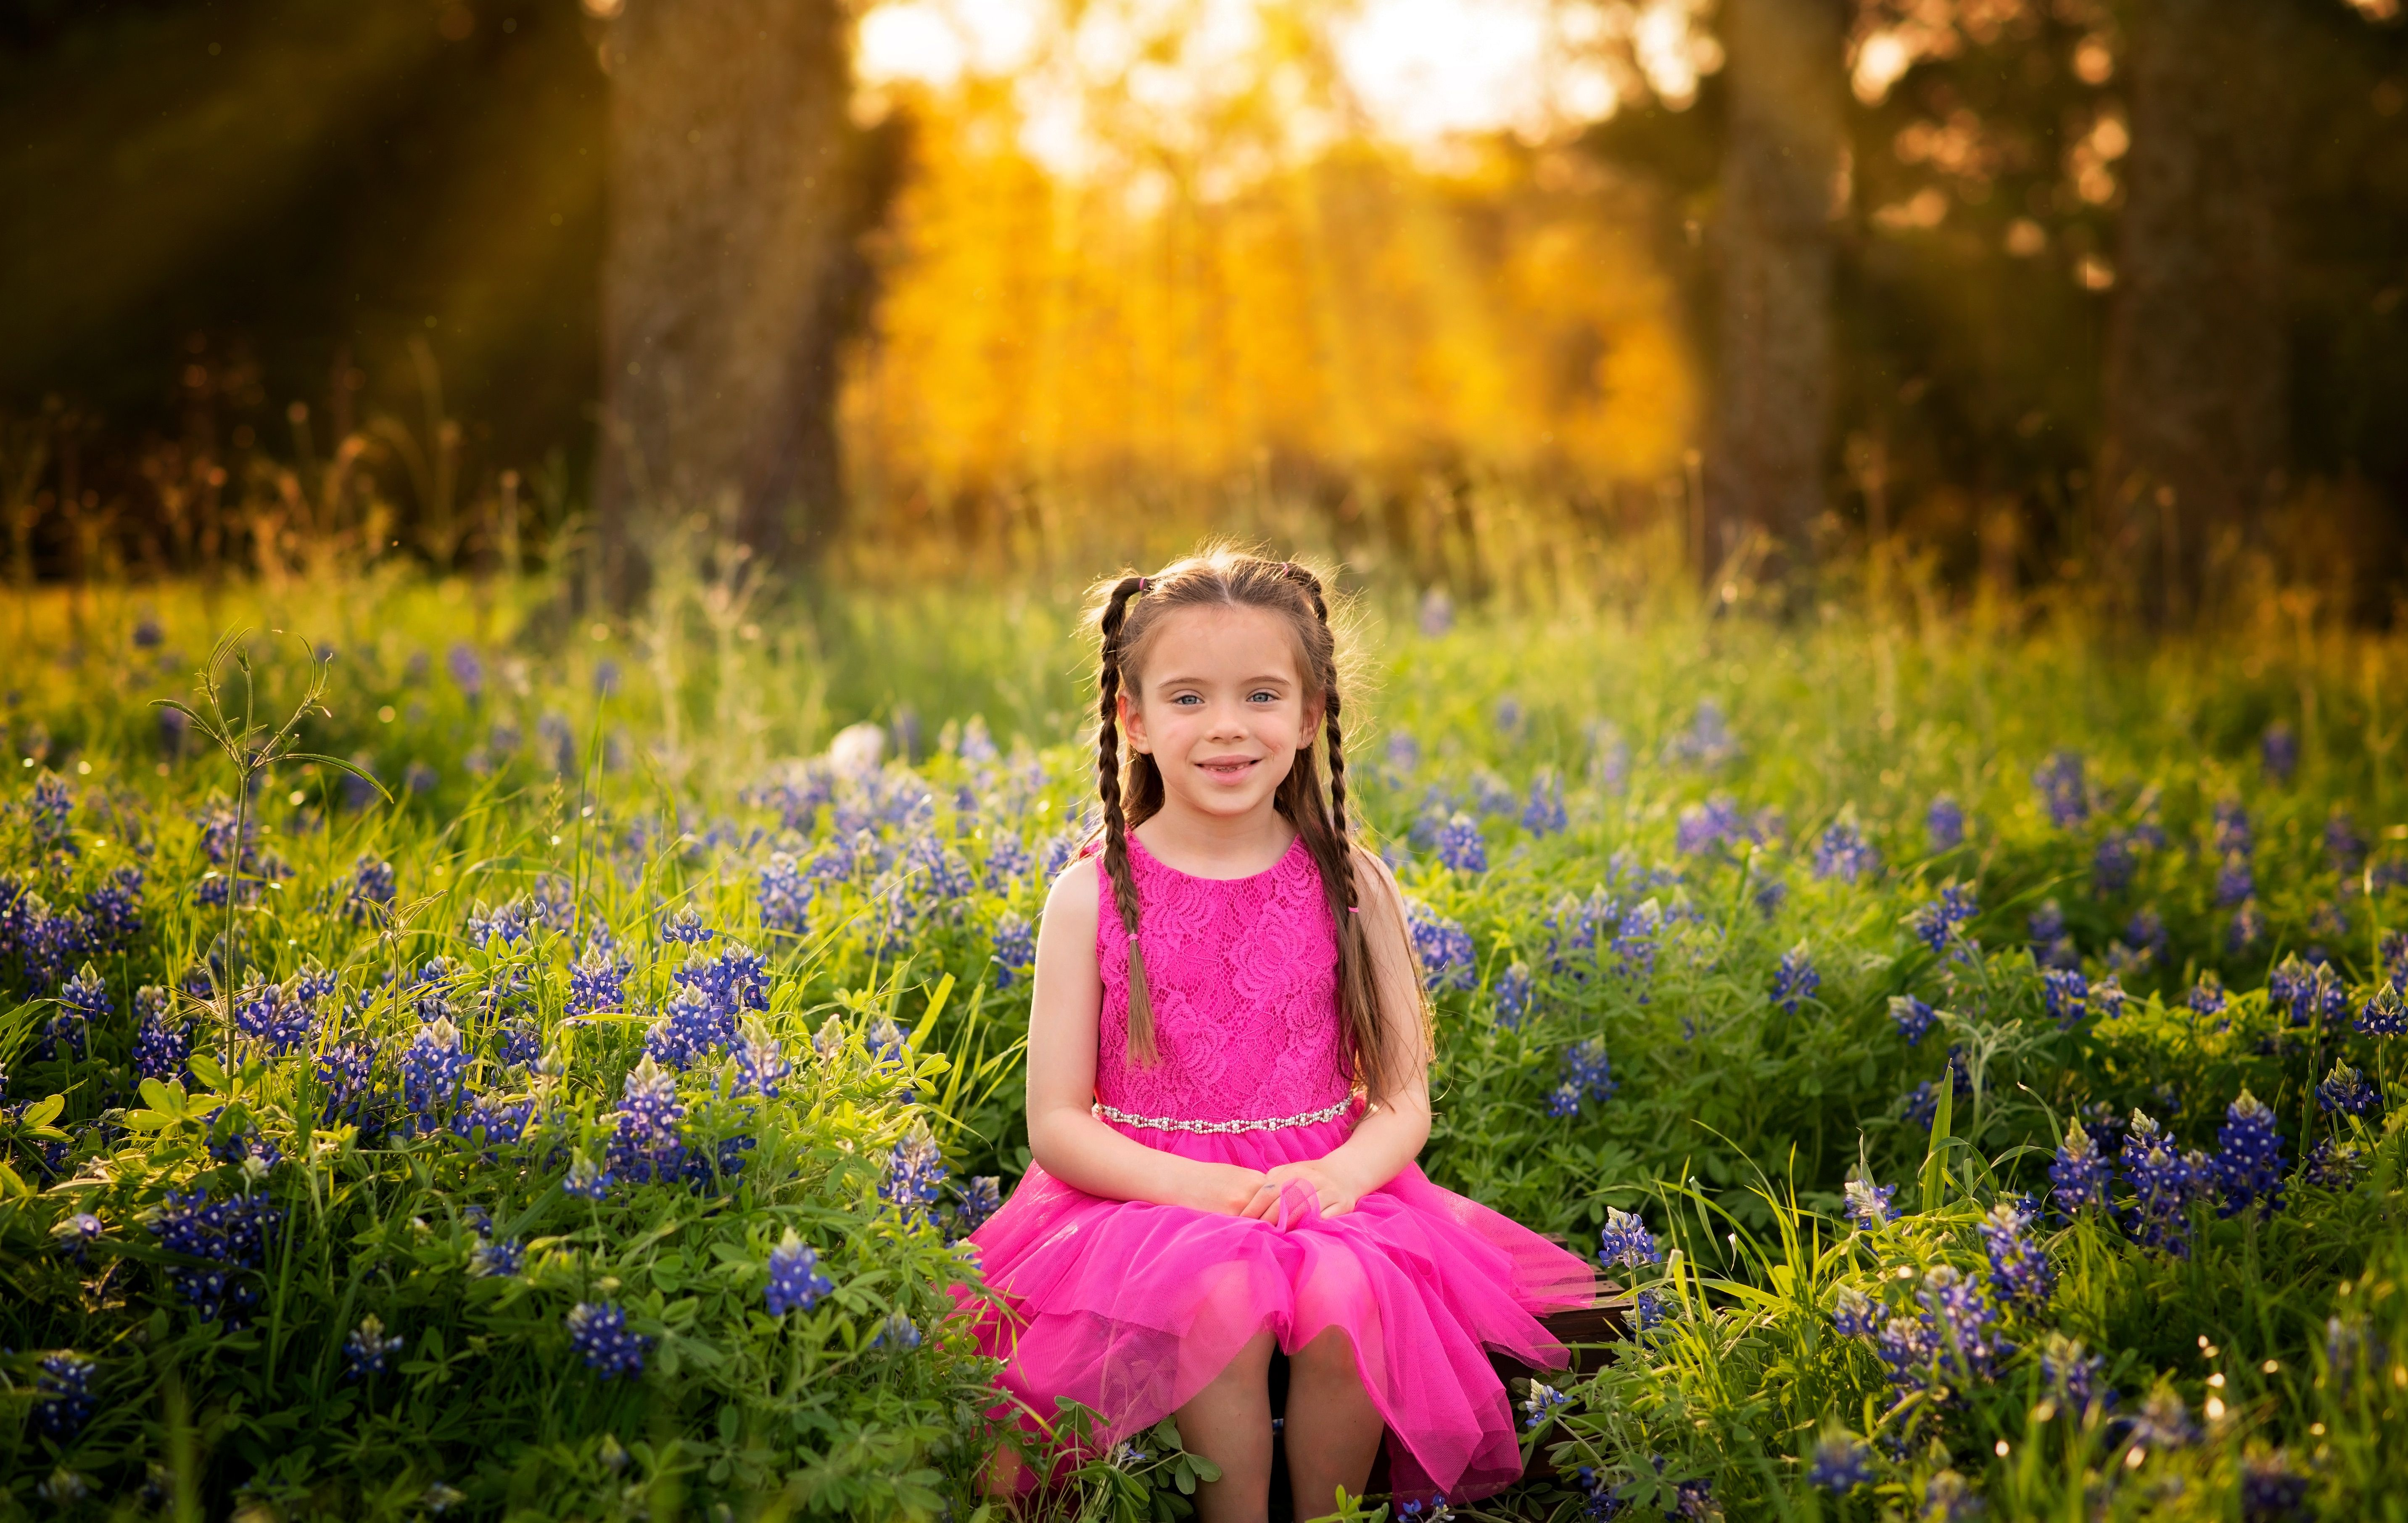 Texas Bluebonnet Session With Alicia Wilson Photography In Rockwall Texas In 2020 Flower Girl Dresses Lifestyle Newborn Photography Blue Bonnets